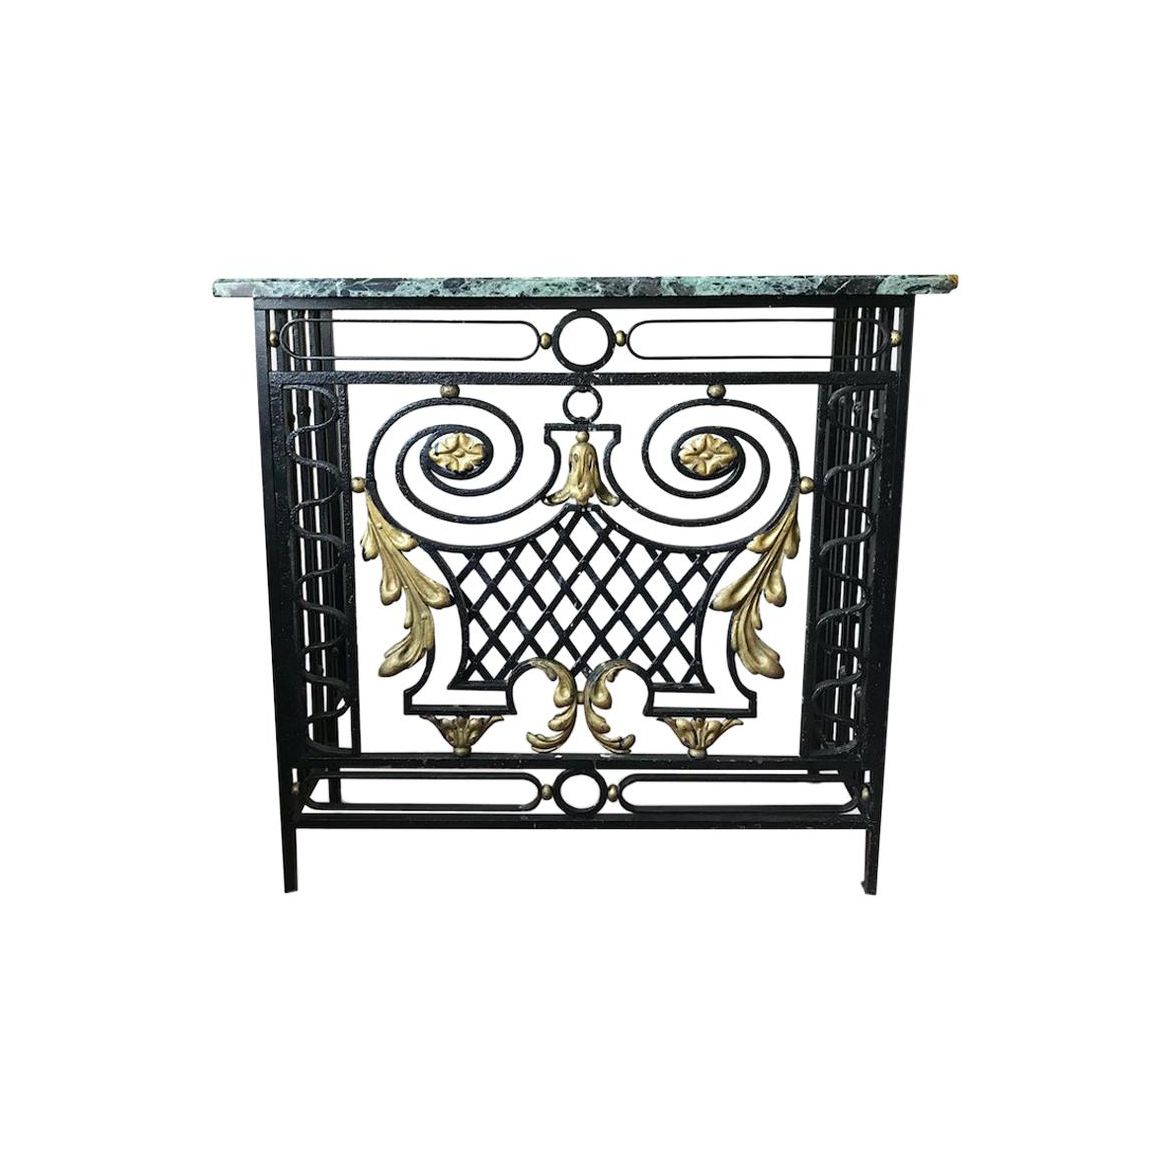 1920s Marble And Gilt Metal Console Radiator Cover For Sale The Kairos Collective Uk